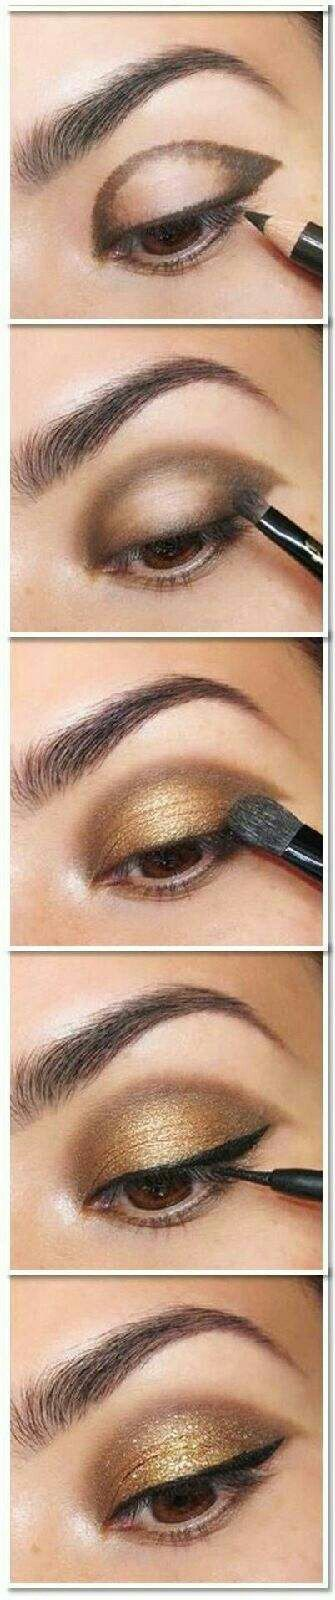 #eyes #eyemakeup #eyedesigns #makeup #beauty #popular How to